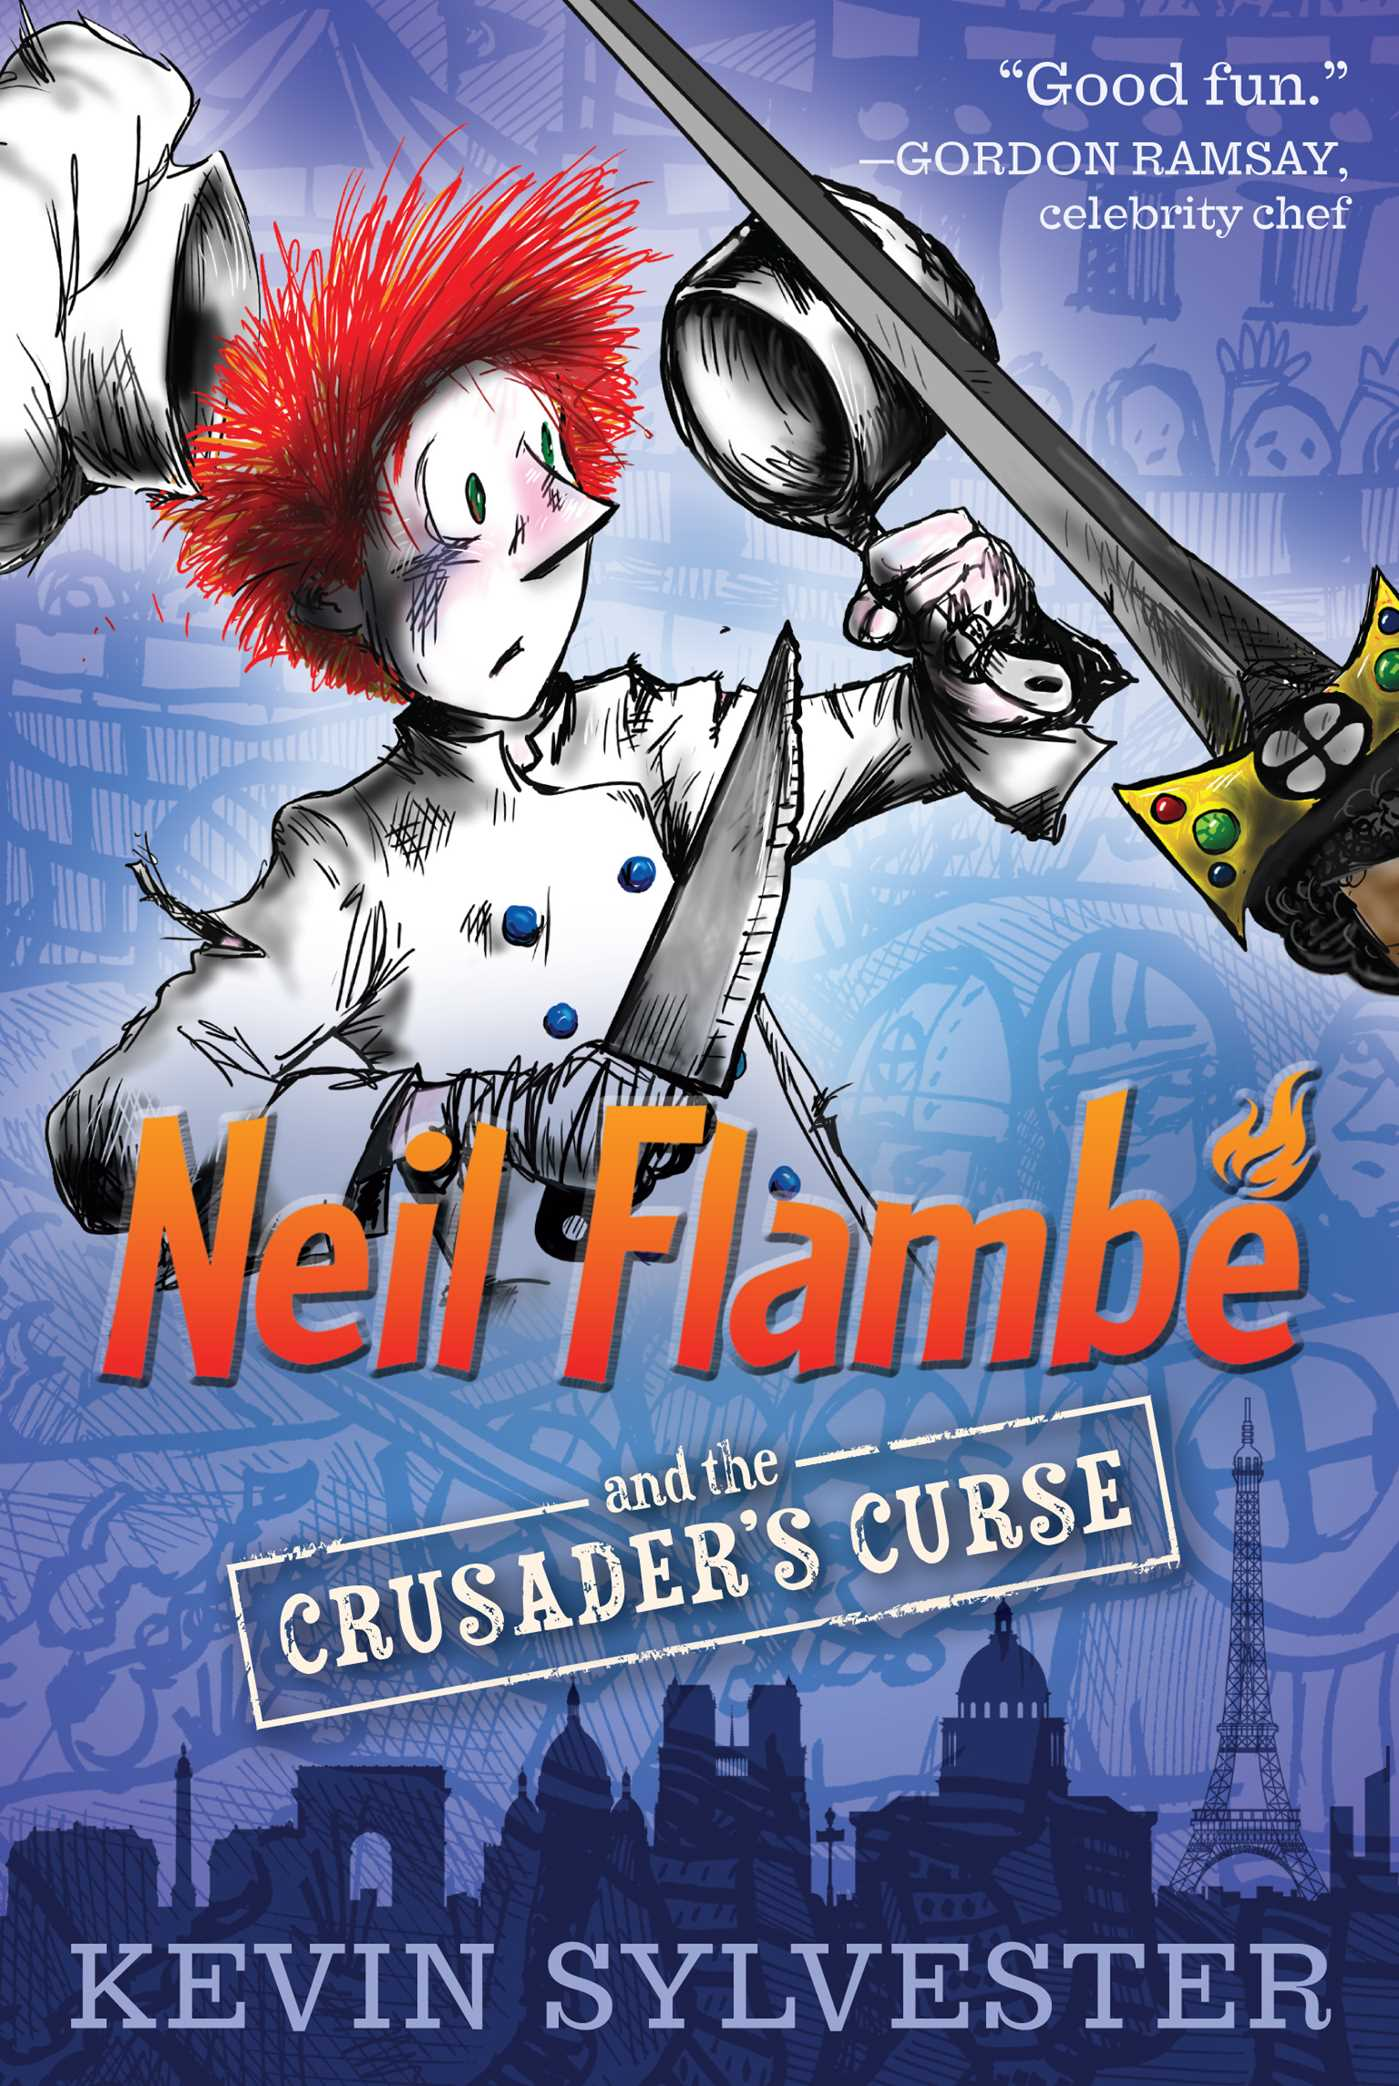 Neil flambe and the crusaders curse 9781442442870 hr